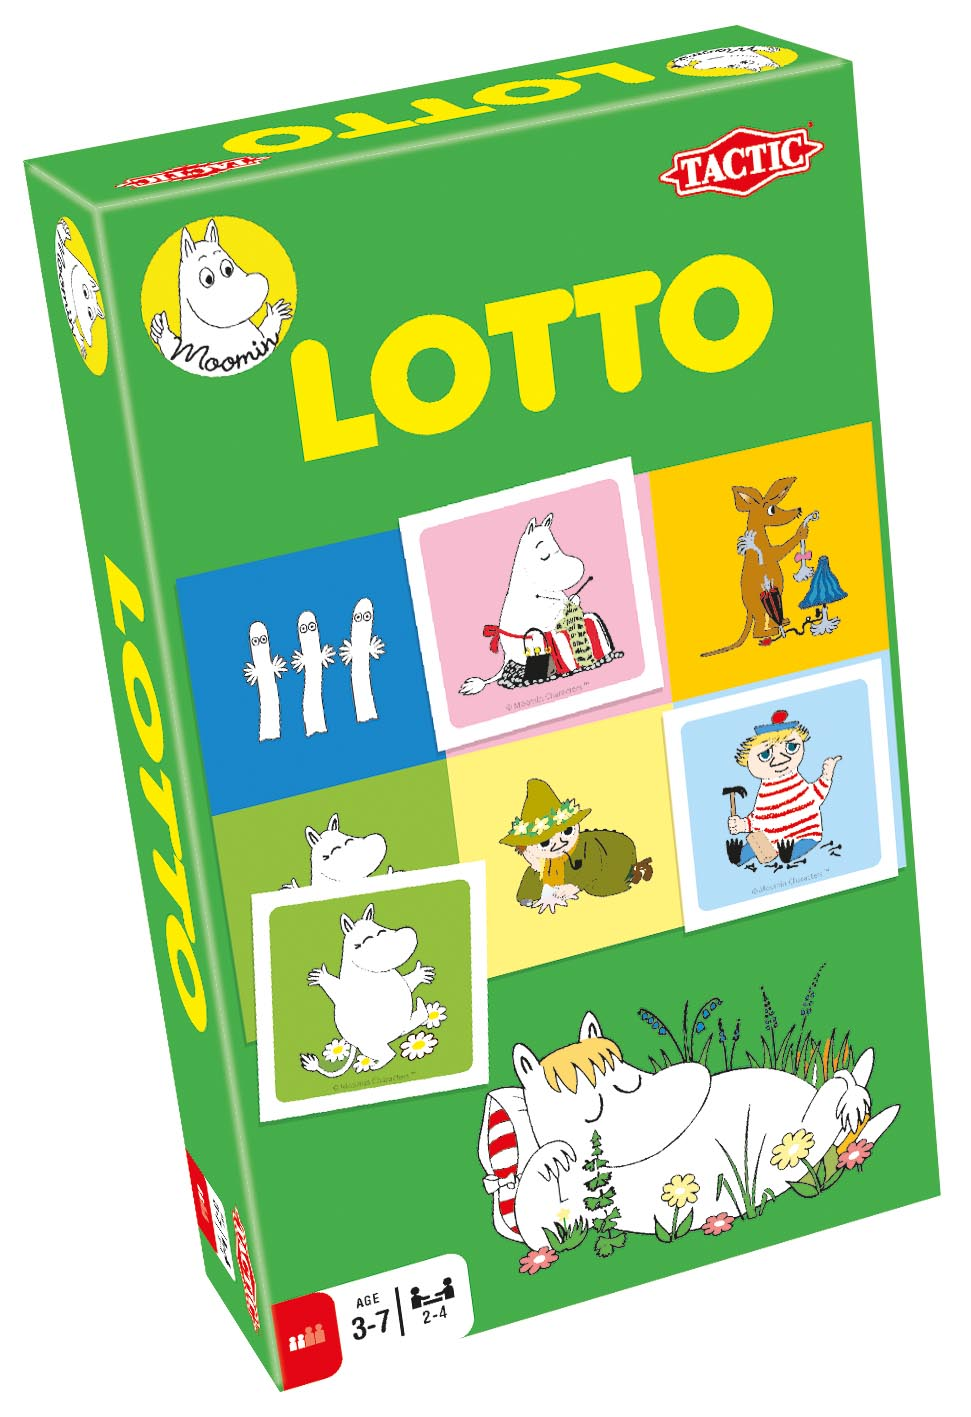 Tactic Travel Moomin Lotto